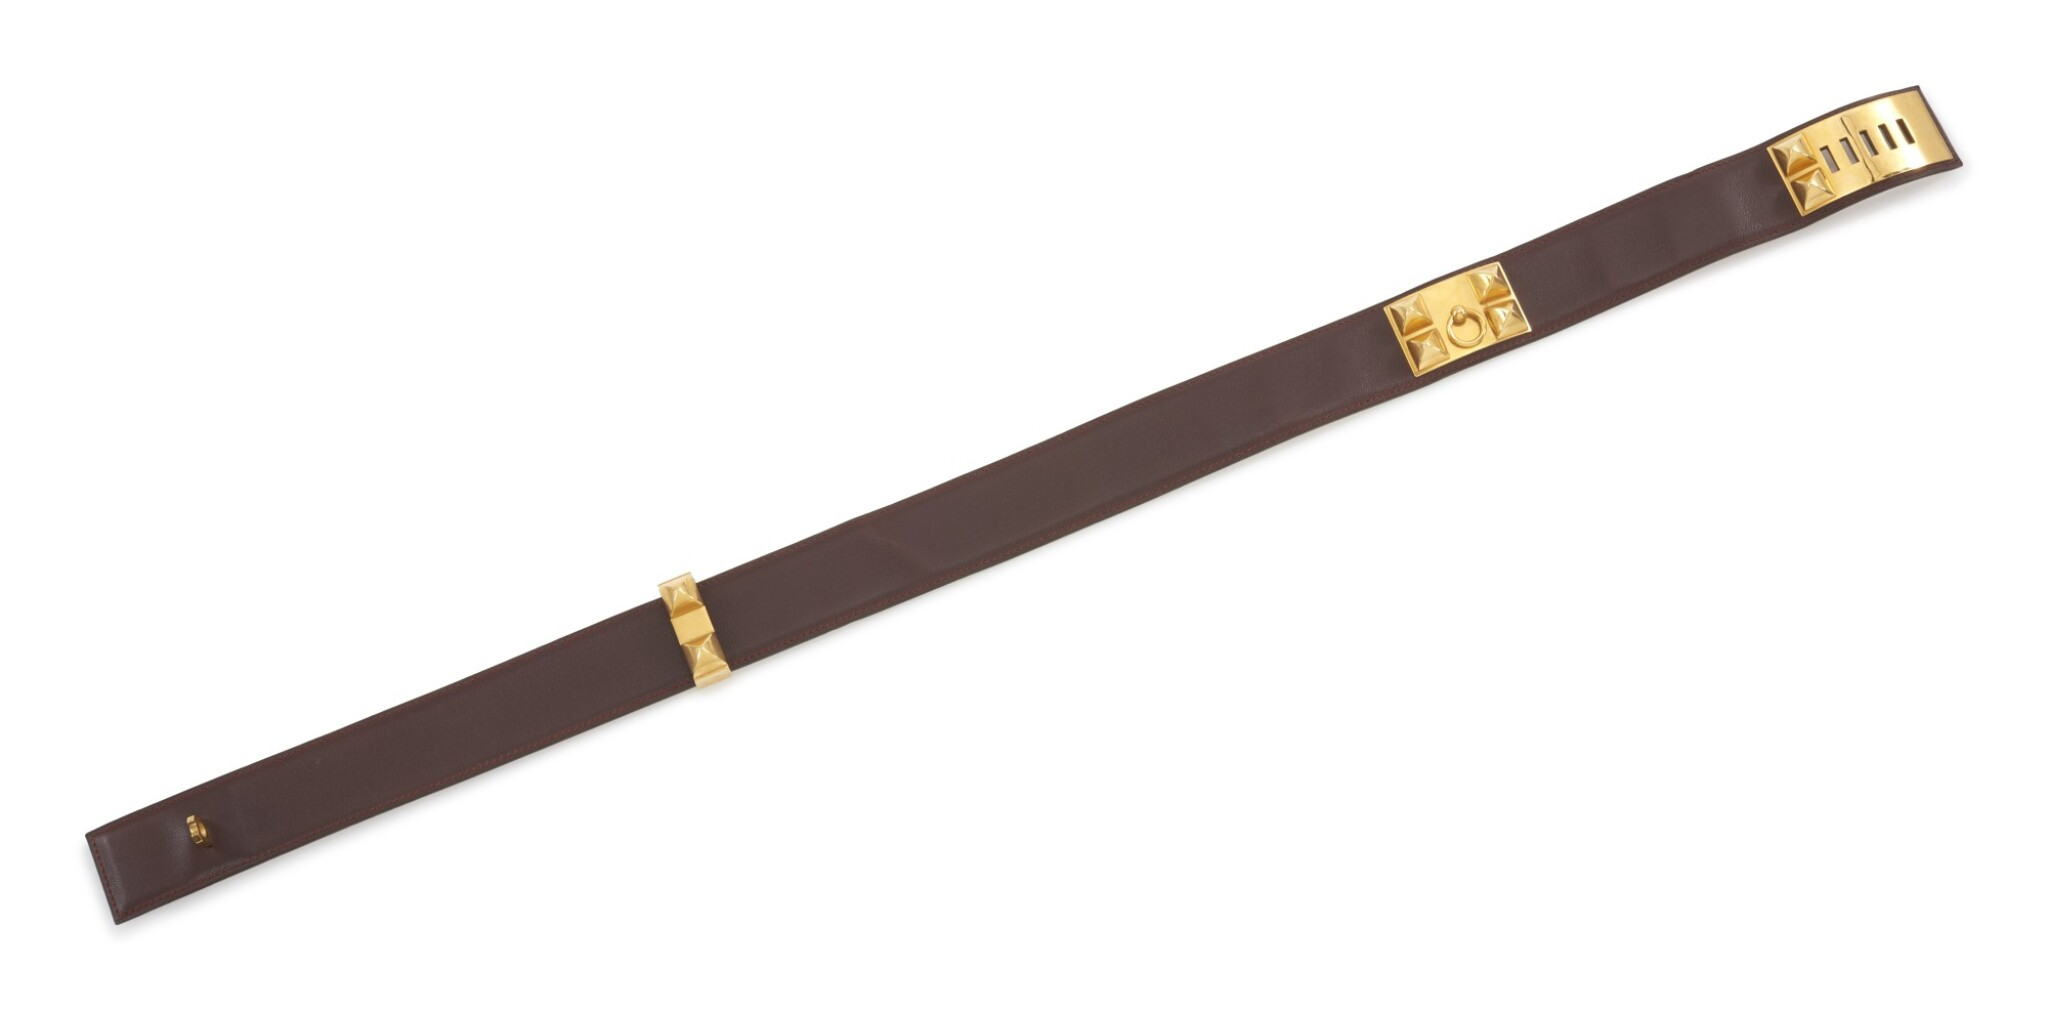 Burgundy leather and gold hardware belt, Collier de chien 70, Hermès, 1996